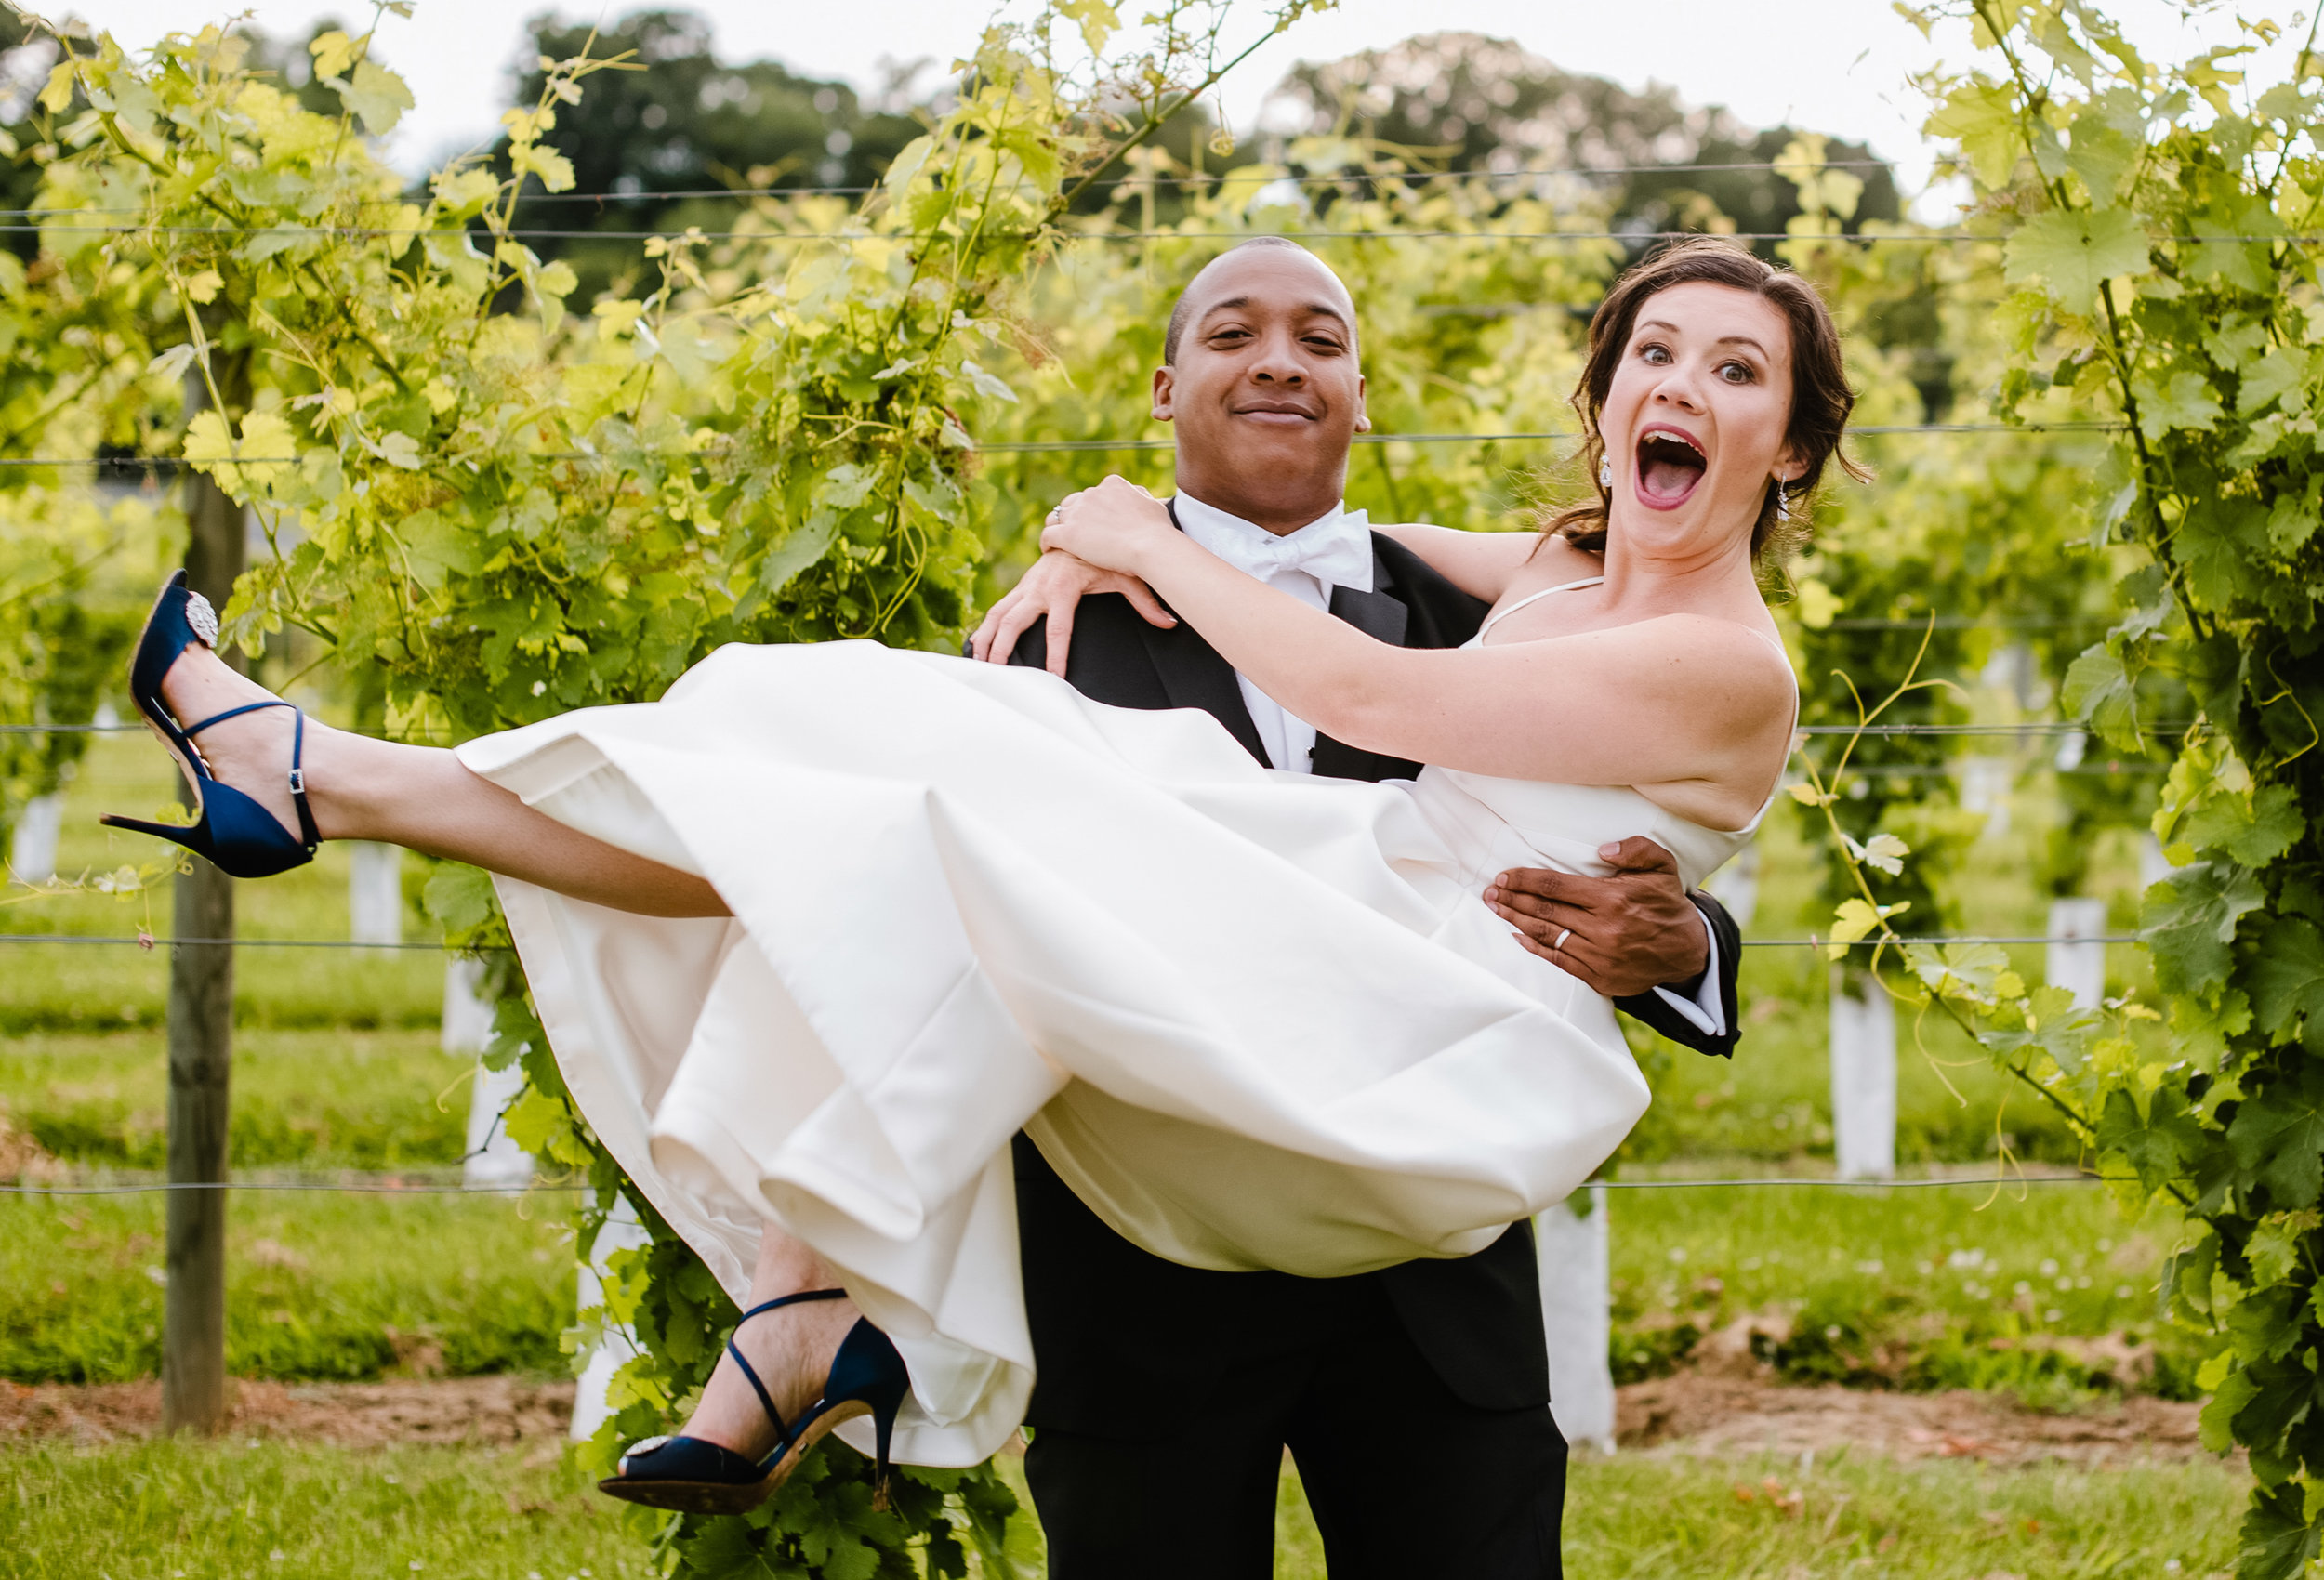 vineyard-wedding-silly-romance.jpg